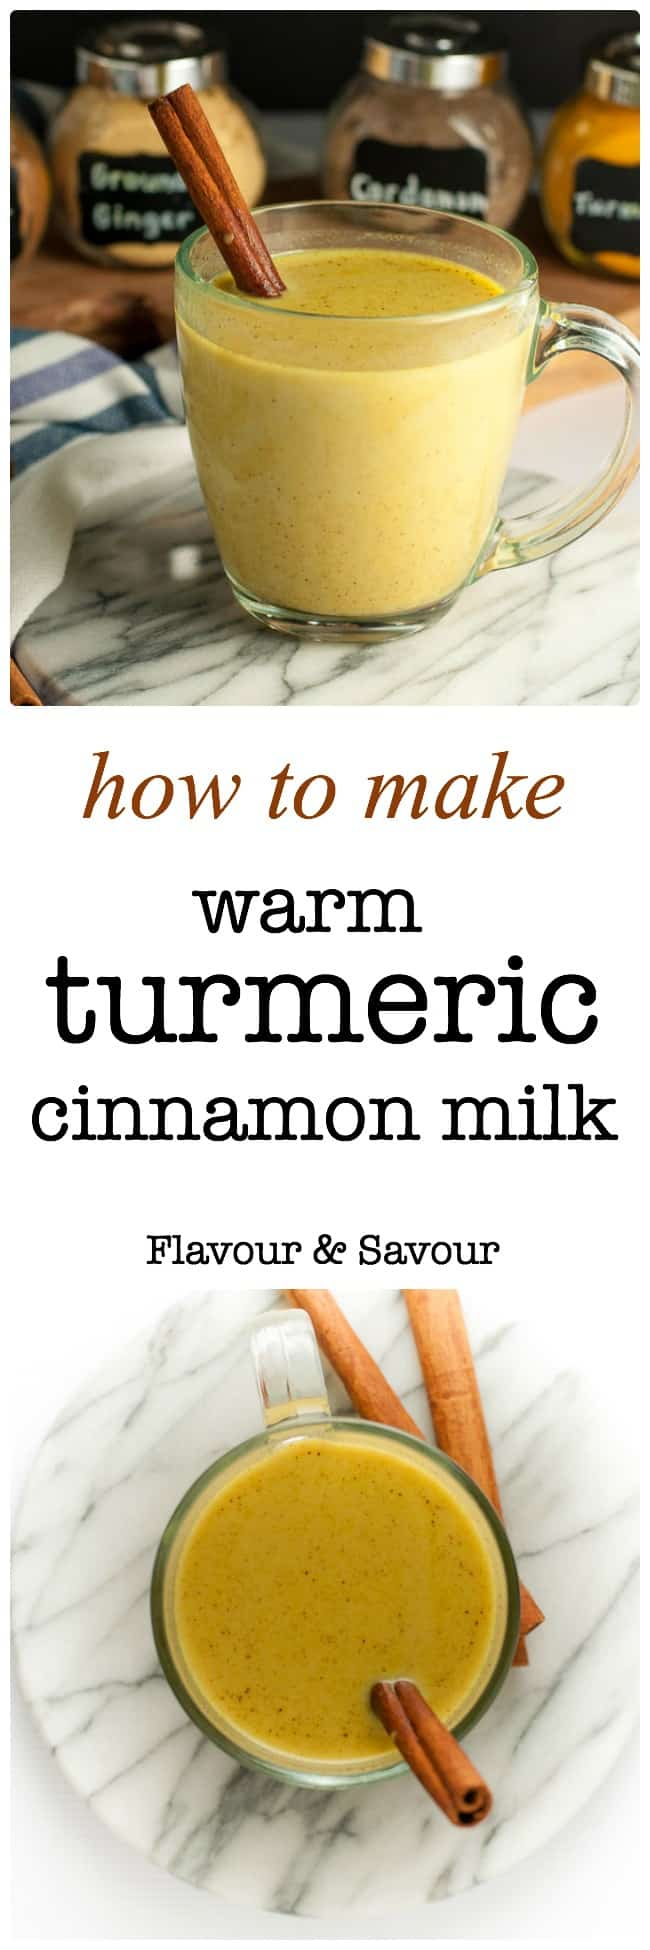 Easy instructions for how to make Warm Turmeric Cinnamon Milk, a healthy anti-inflammatory, anti-oxidant drink that may also help you sleep! |www.flavourandsavour.com